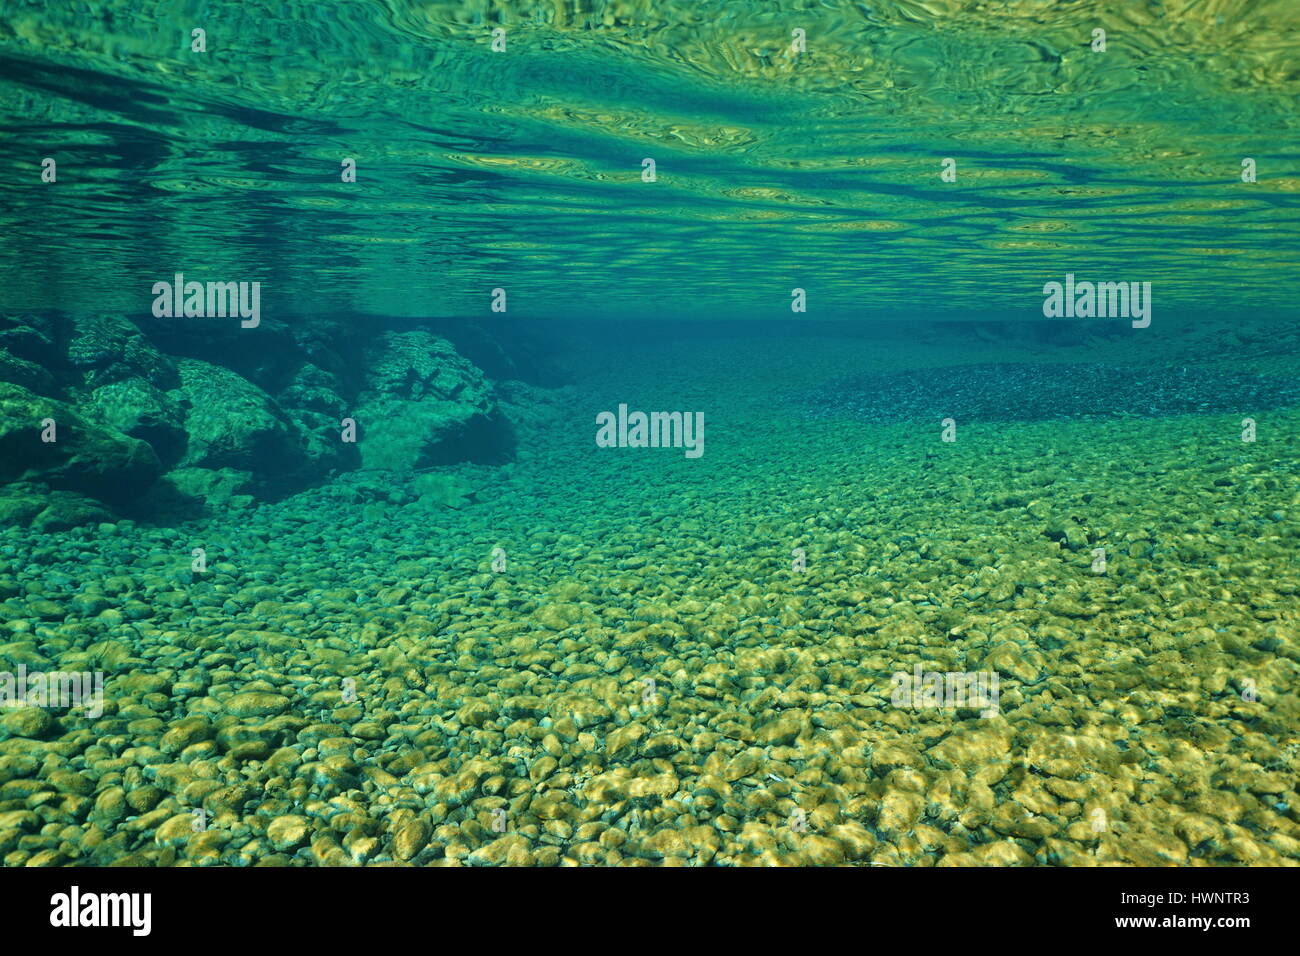 River underwater surface with pebbles on the riverbed, natural scene, Dumbea, New Caledonia, south Pacific - Stock Image